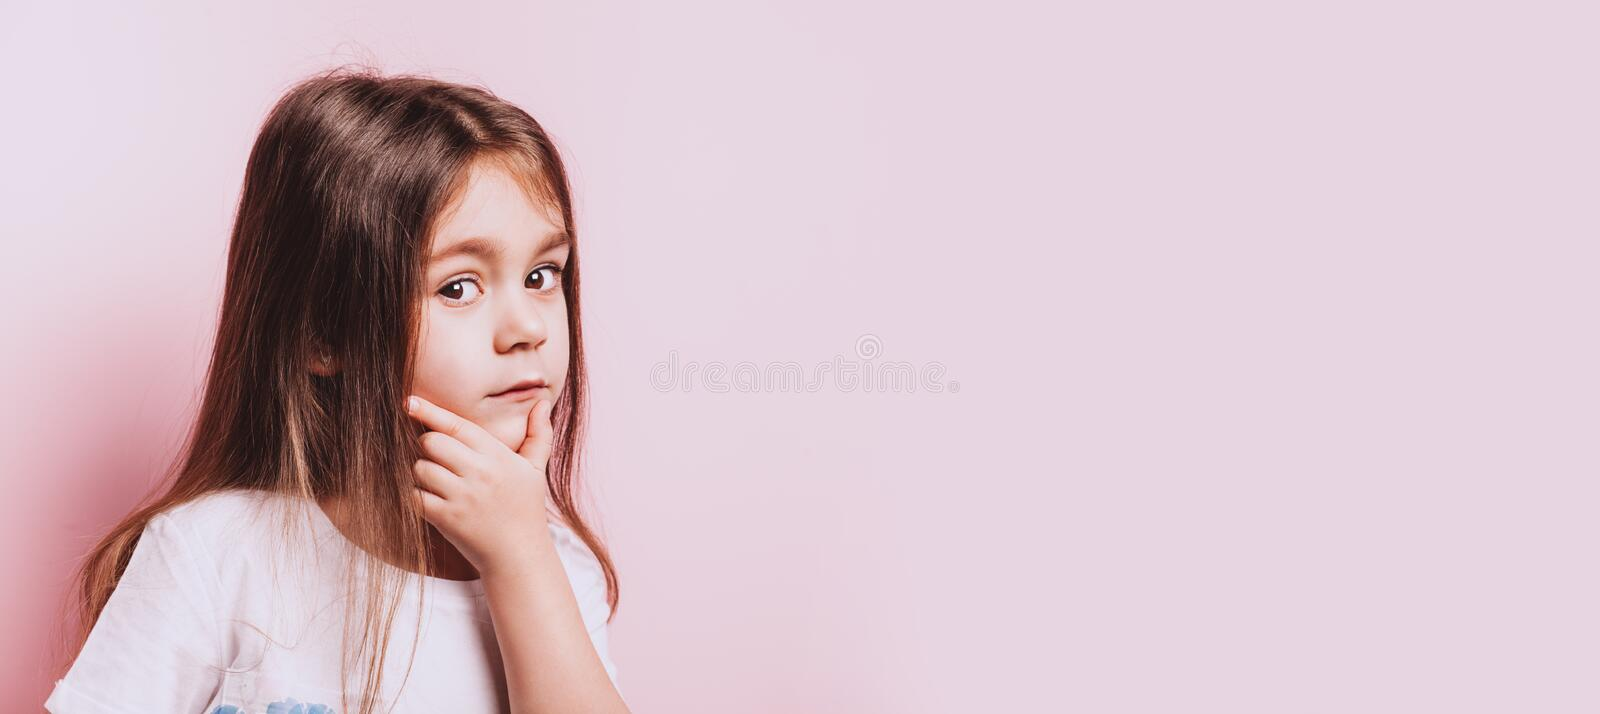 Funny portrait of little doubt girl on pink background royalty free stock image